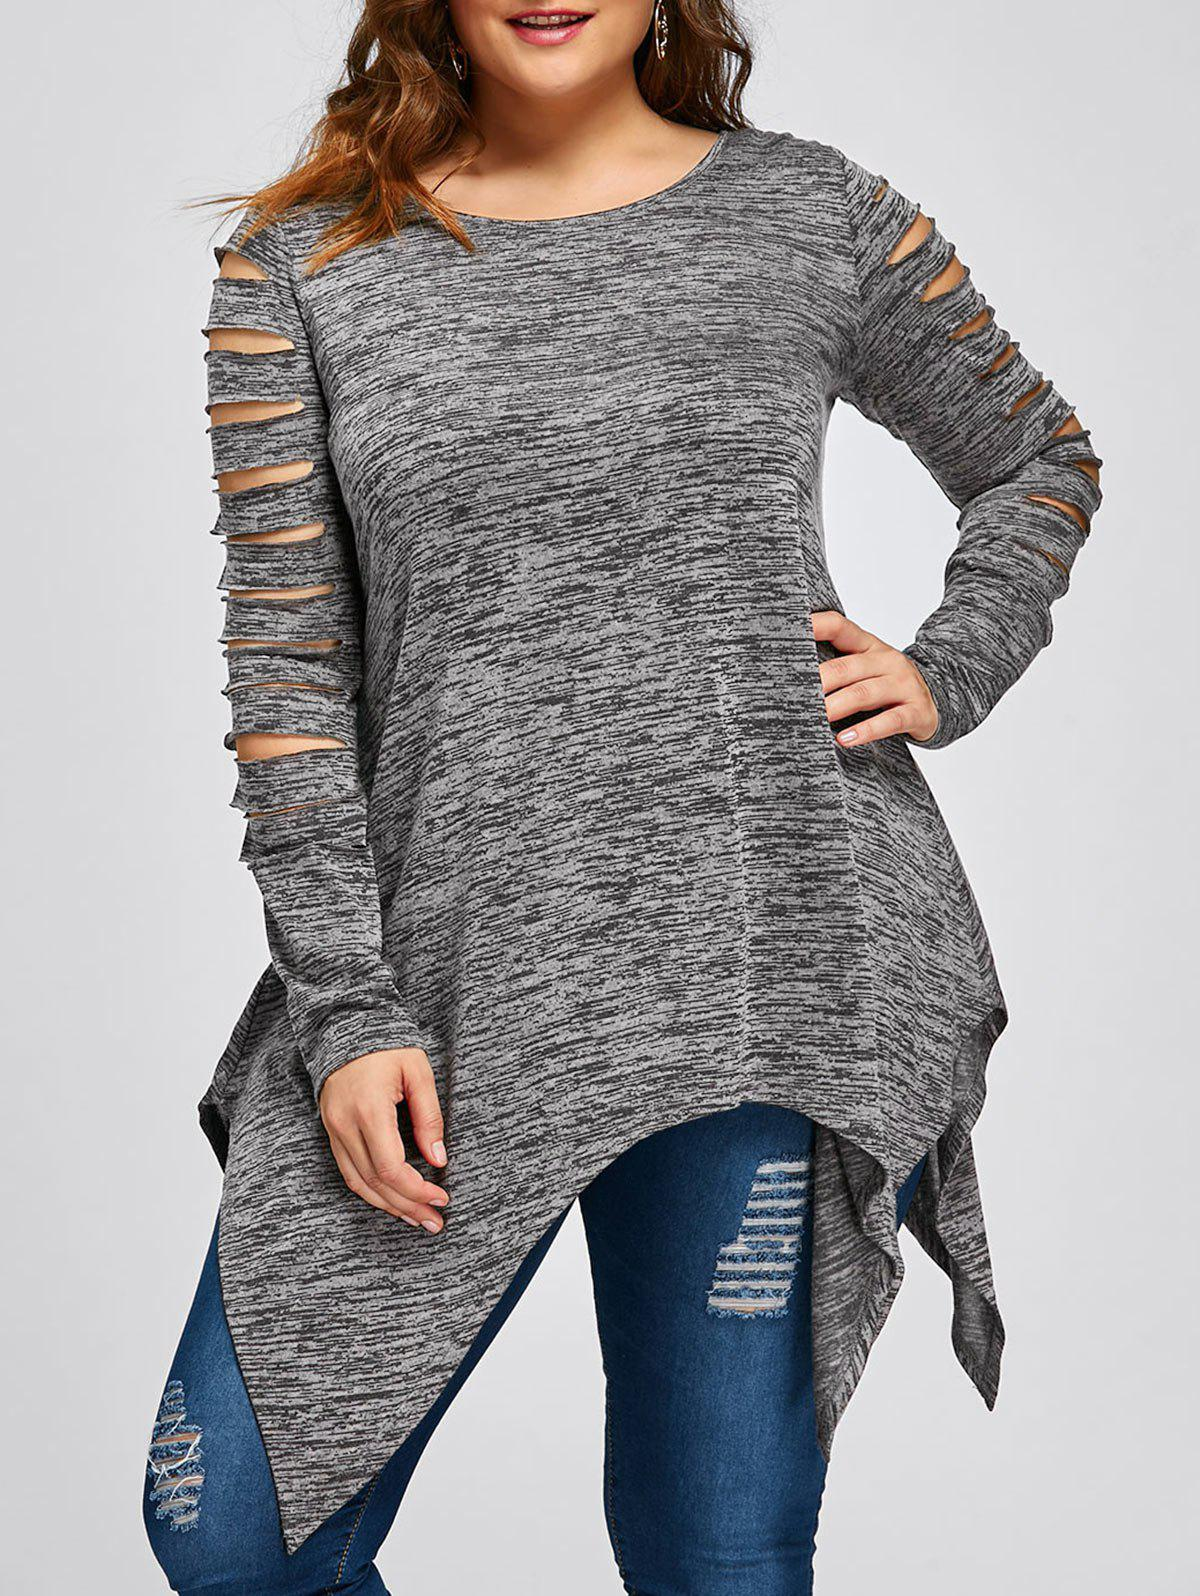 Plus Size Ripped Sleeve Marled Handkerchief TopWOMEN<br><br>Size: 2XL; Color: HEATHER GRAY; Material: Polyester,Rayon; Shirt Length: Long; Sleeve Length: Full; Collar: Round Neck; Style: Casual; Season: Fall,Spring; Pattern Type: Others; Weight: 0.2700kg; Package Contents: 1 x Top;